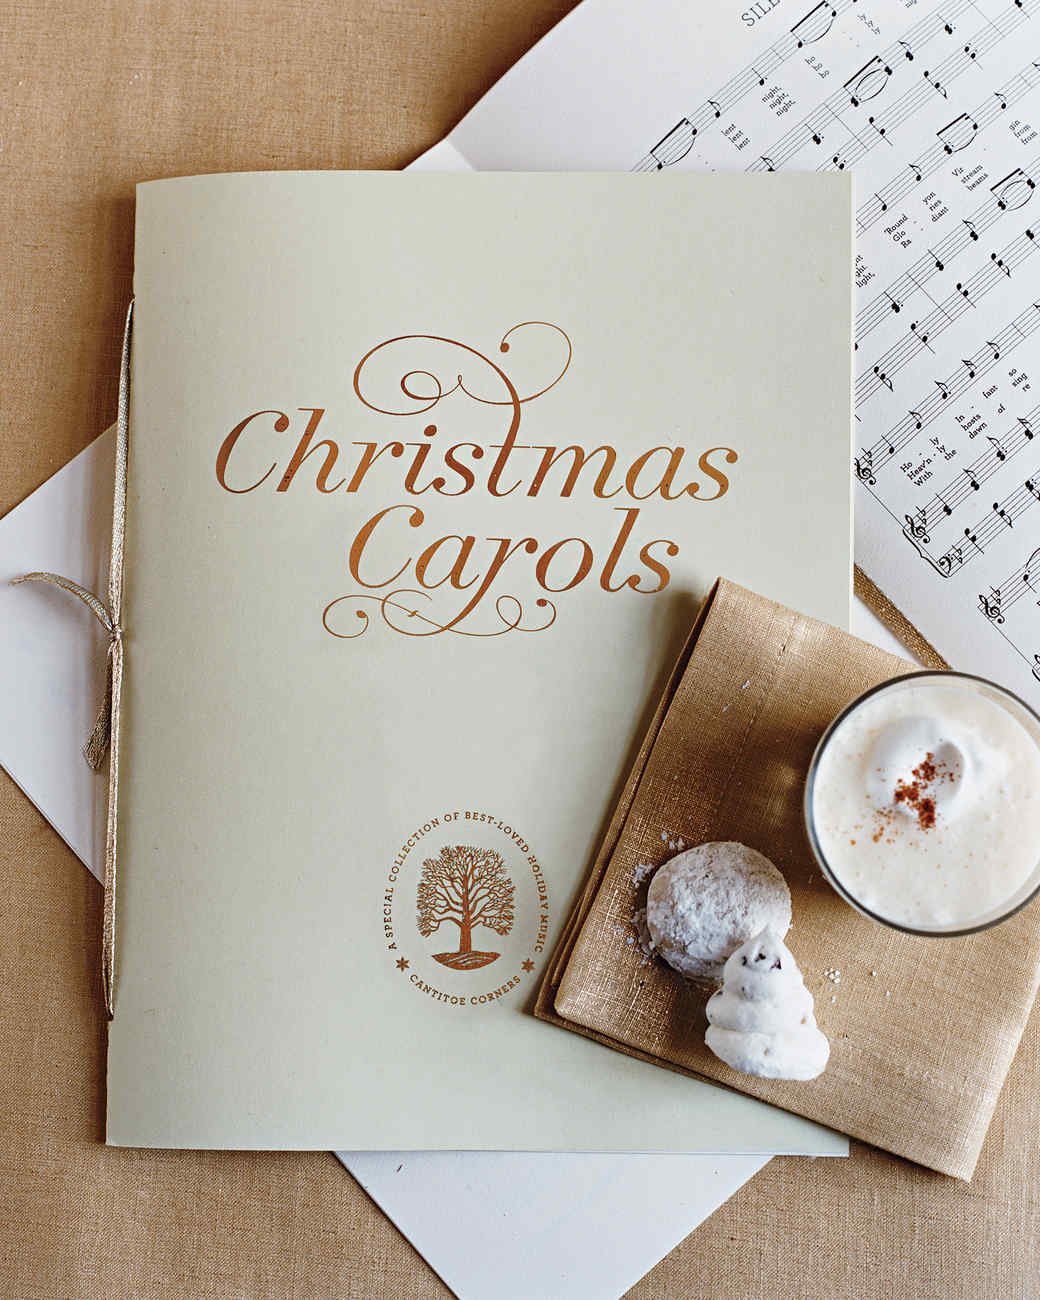 a songbook from Martha's Christmas caroling party